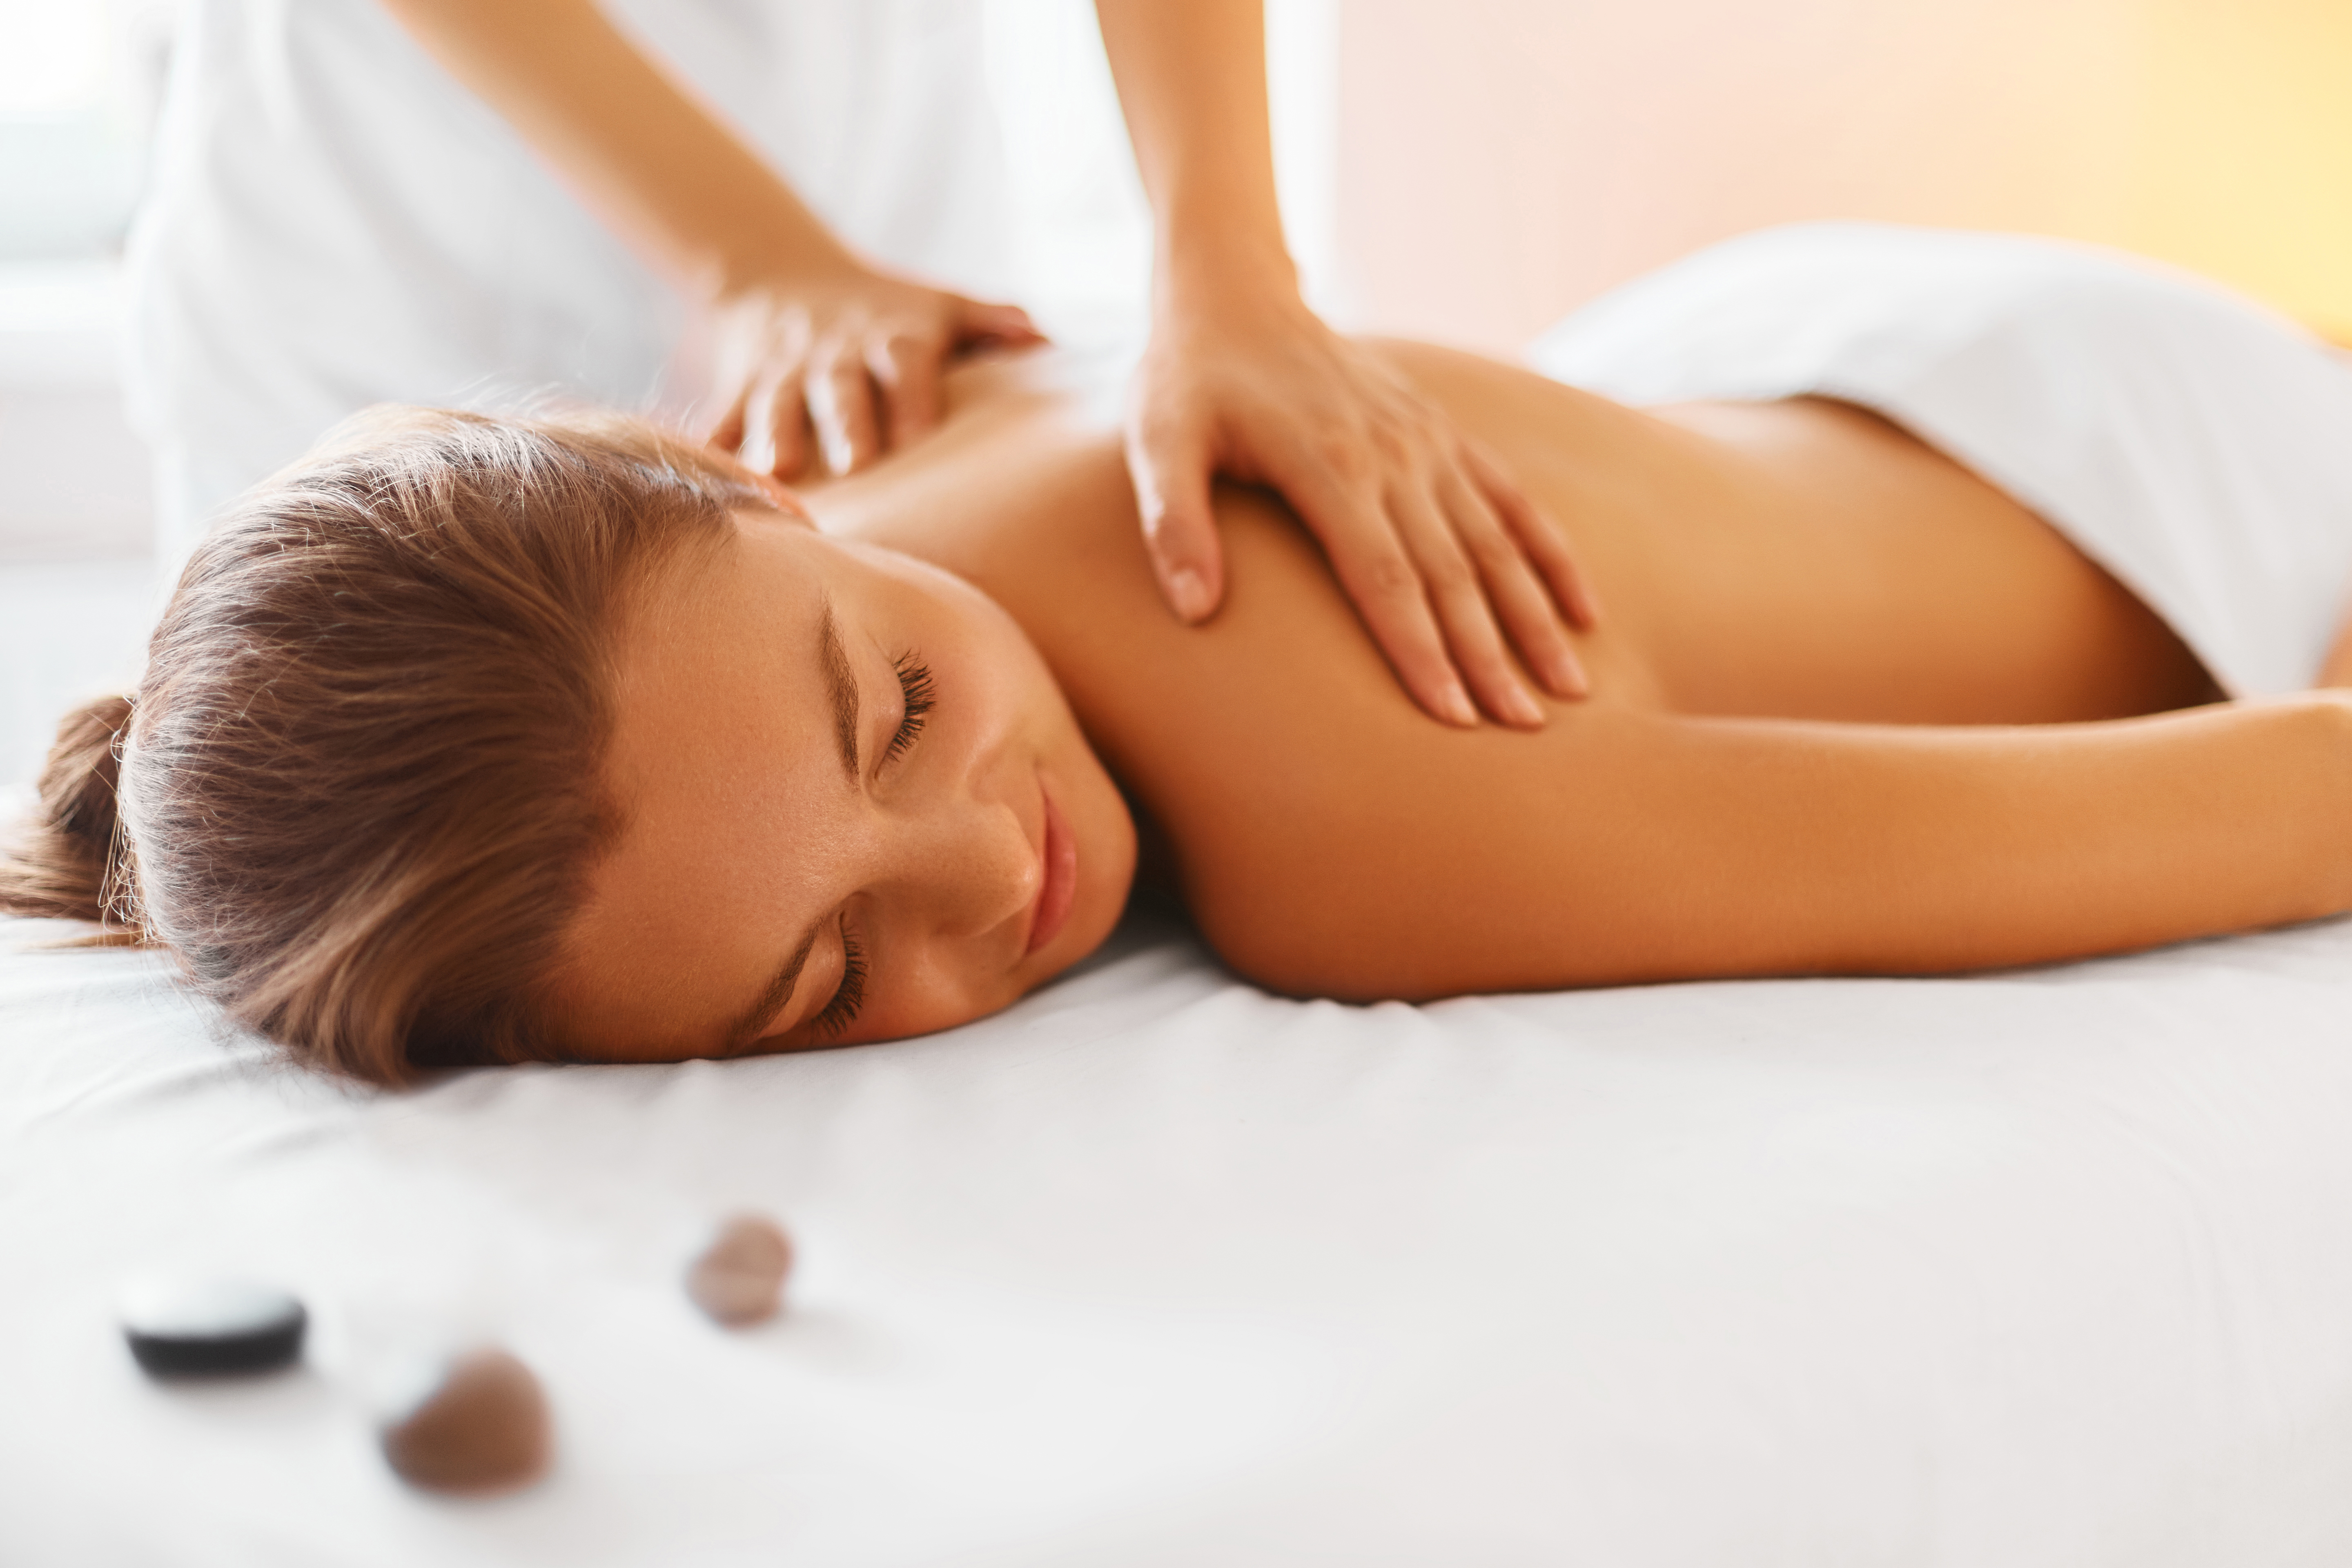 Spa woman. Female enjoying relaxing back